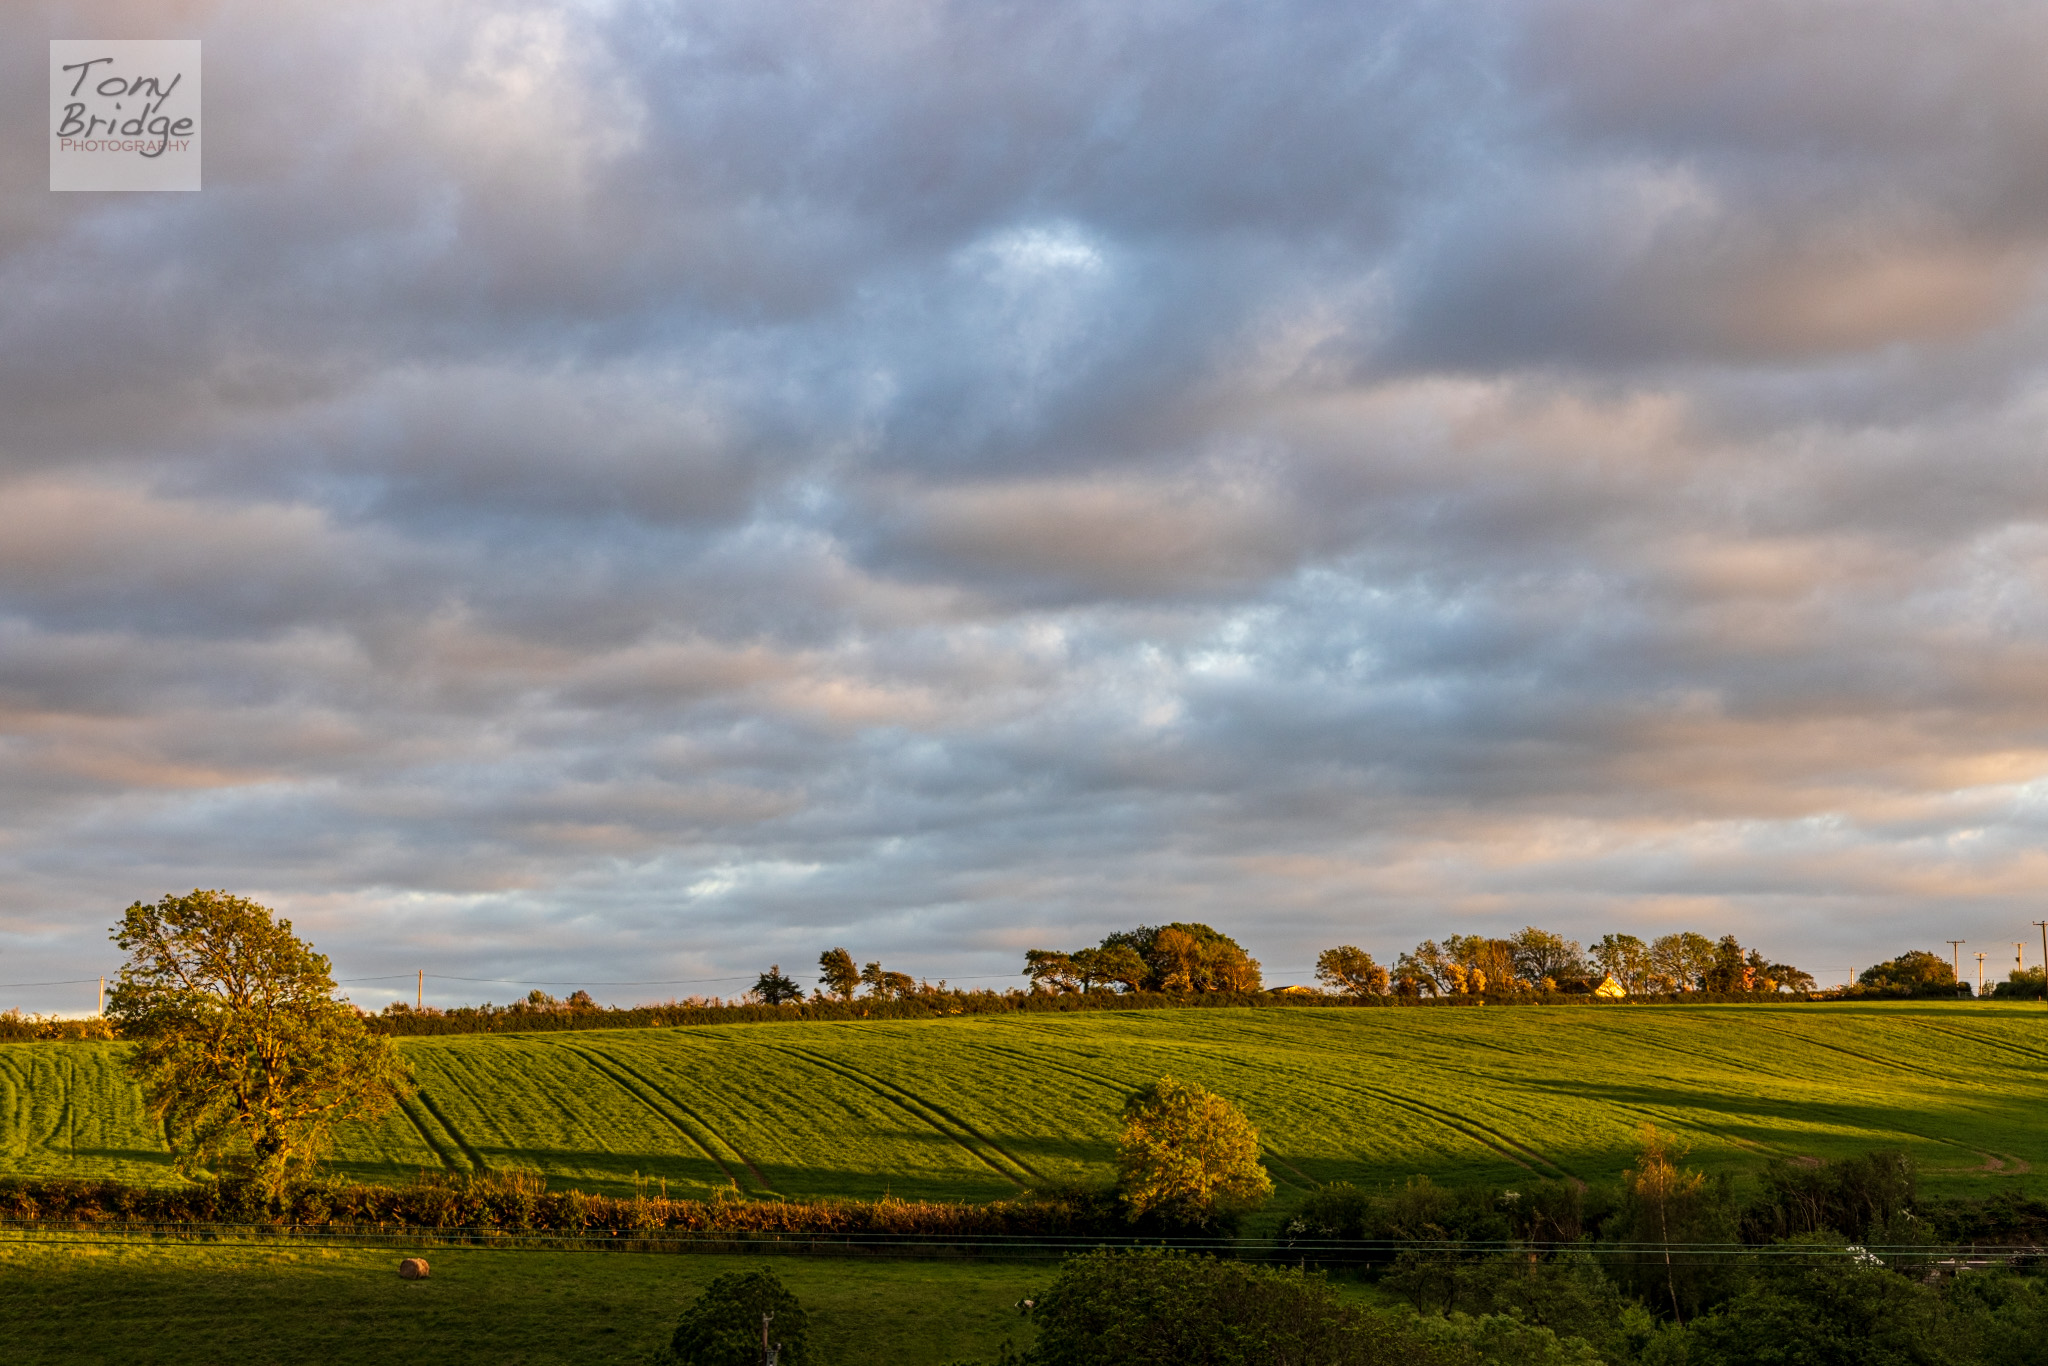 Late evening over the North Devon countryside